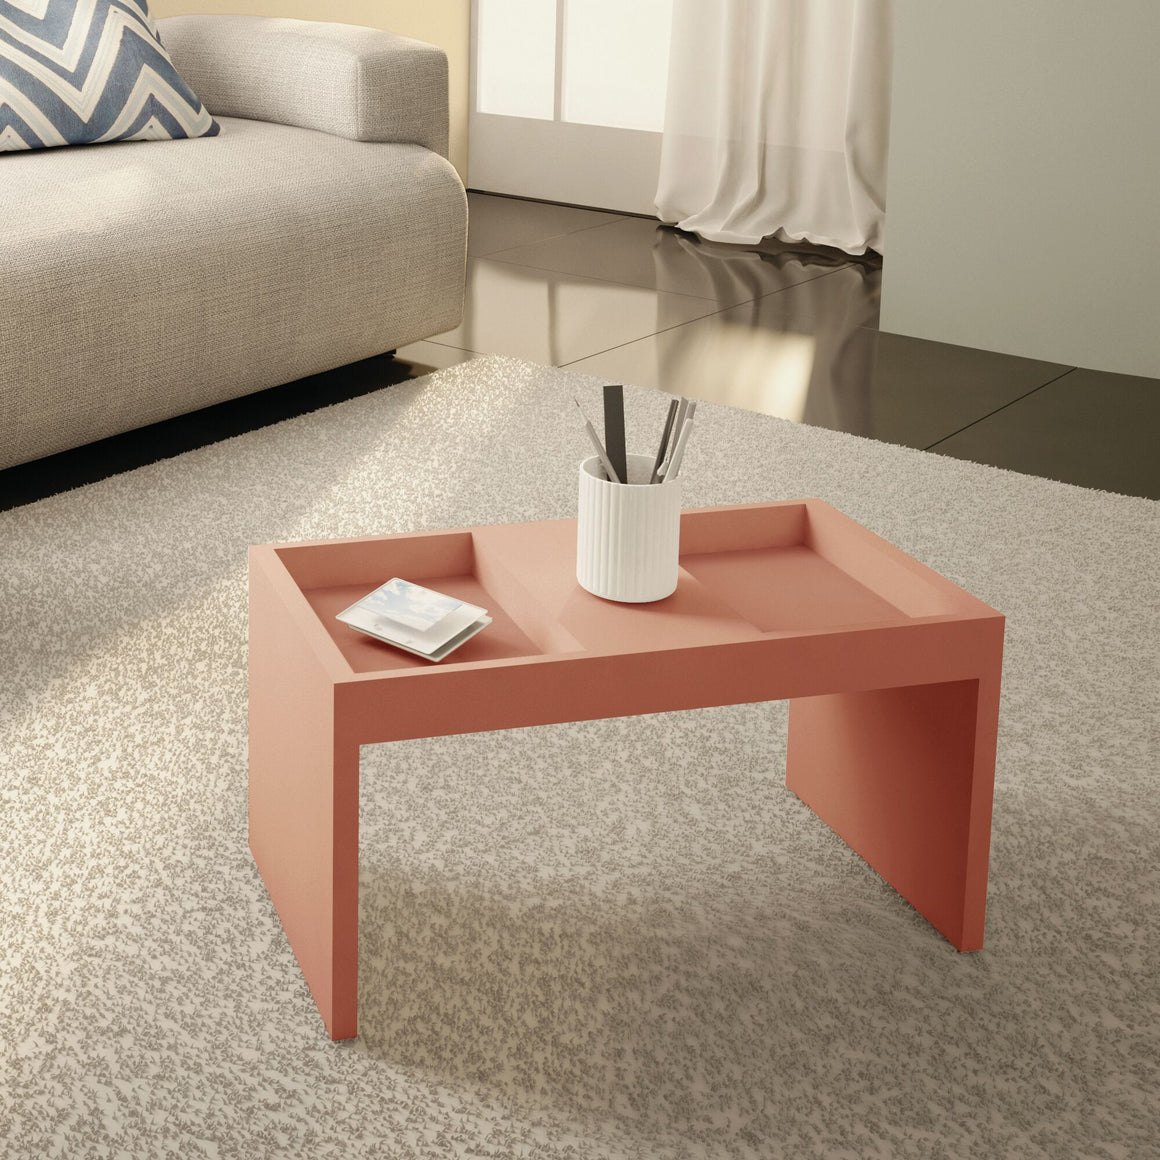 Marine Modern Coffee Table with Magazine Shelf in Ceramic Pink